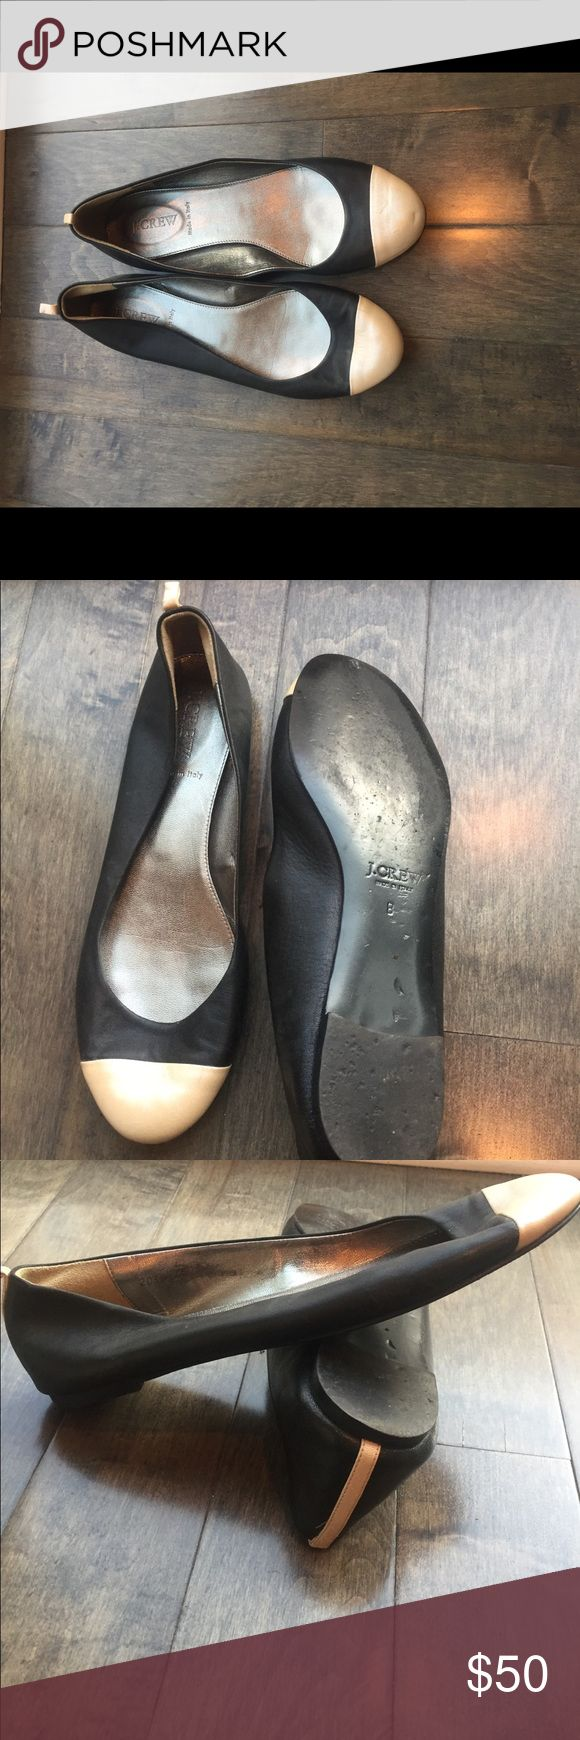 J Crew ballet flats in like new condition. Size 8 These cute and chic black ballet flats with a very light pink/cream cap toe are in great condition and were only worn once or twice. They are made in Italy and great quality. J. Crew Shoes Flats & Loafers